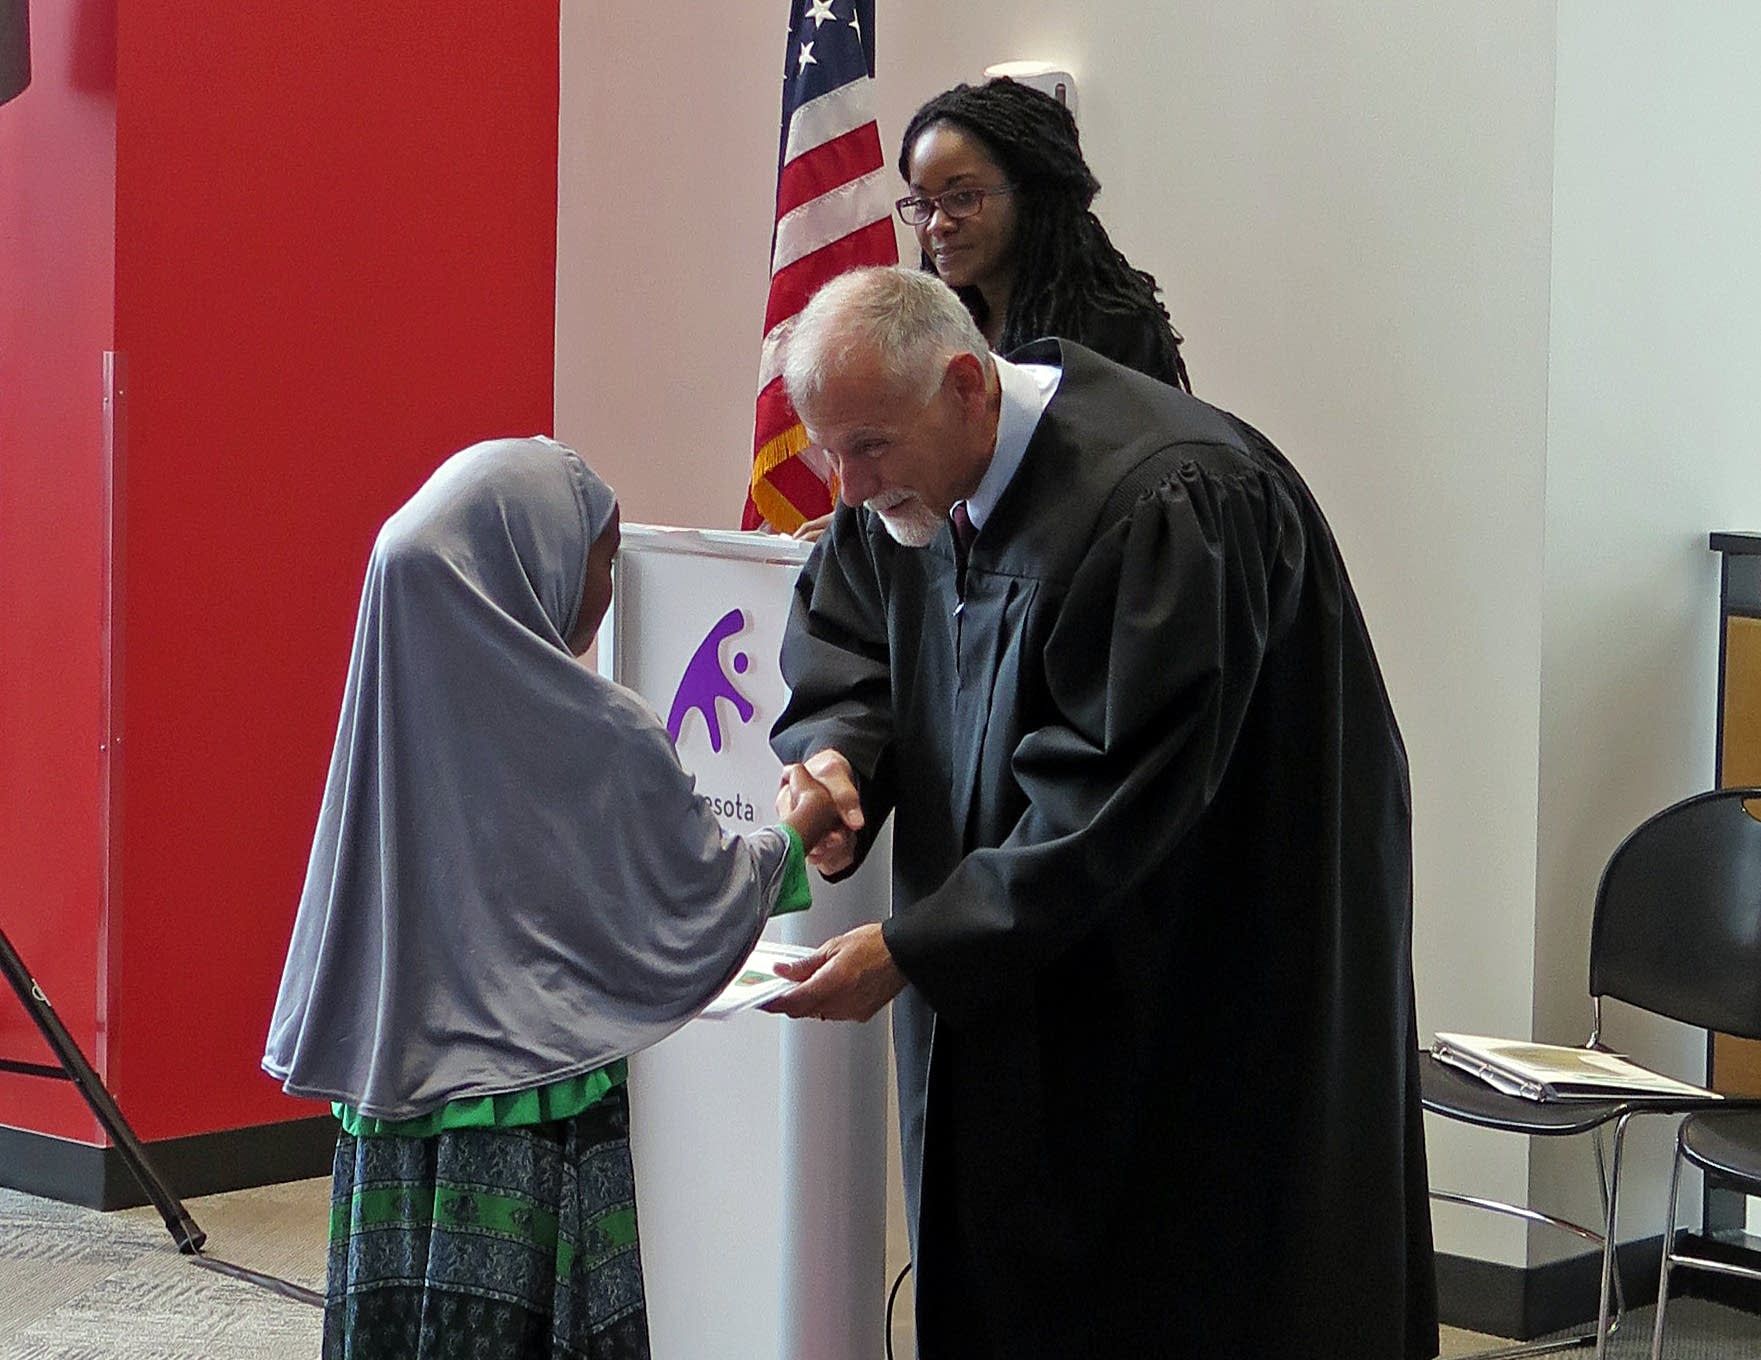 Judge David T. Schultz handed certificates to new, young citizens.